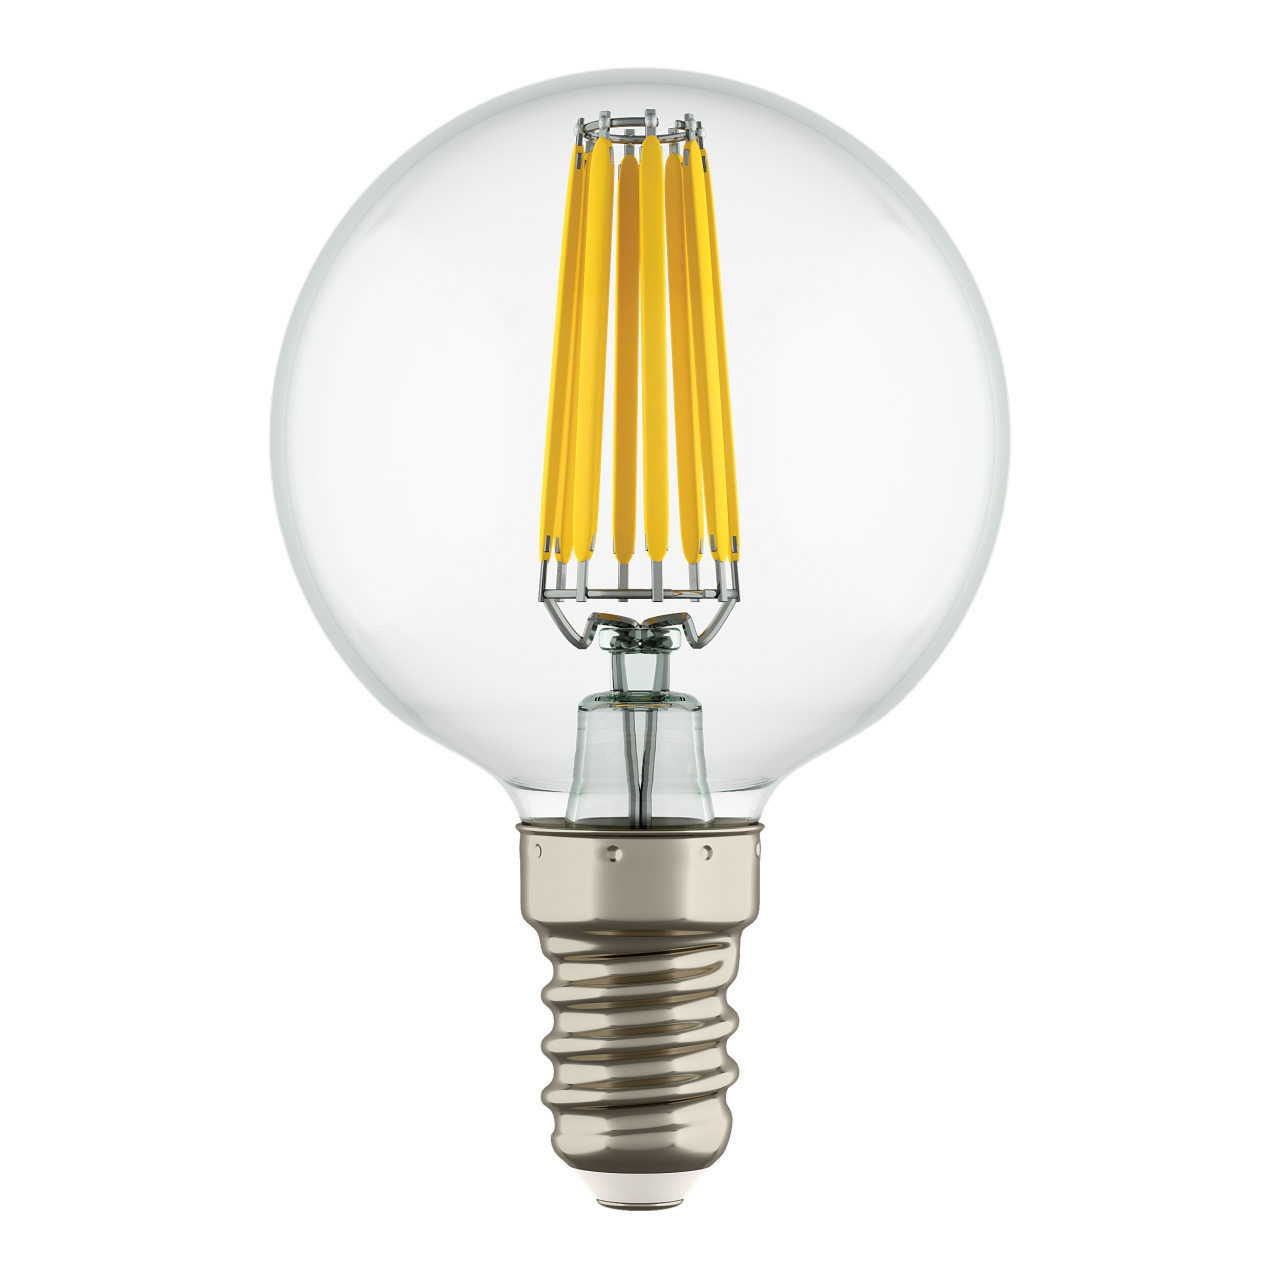 Лампа LED Filament 220V G50 E14 6W=65W 400-430LM 360G CL 4000K 30000H Lightstar 933804